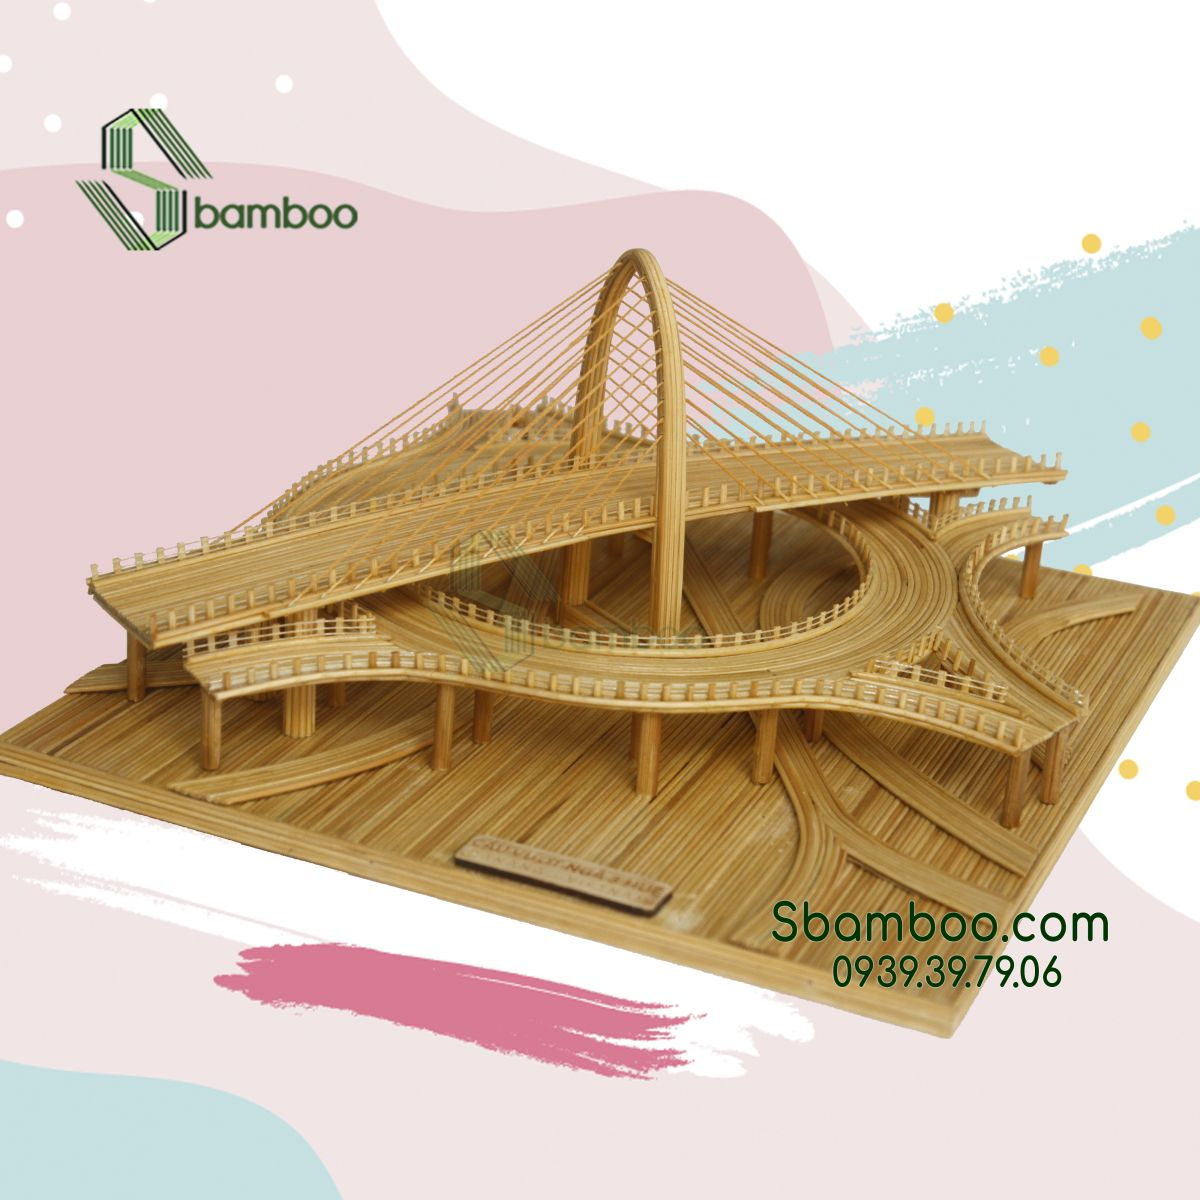 HUE T-JUNCTION OVERPASS (NGA BA HUE OVERPASS) MODEL SBAMBOO